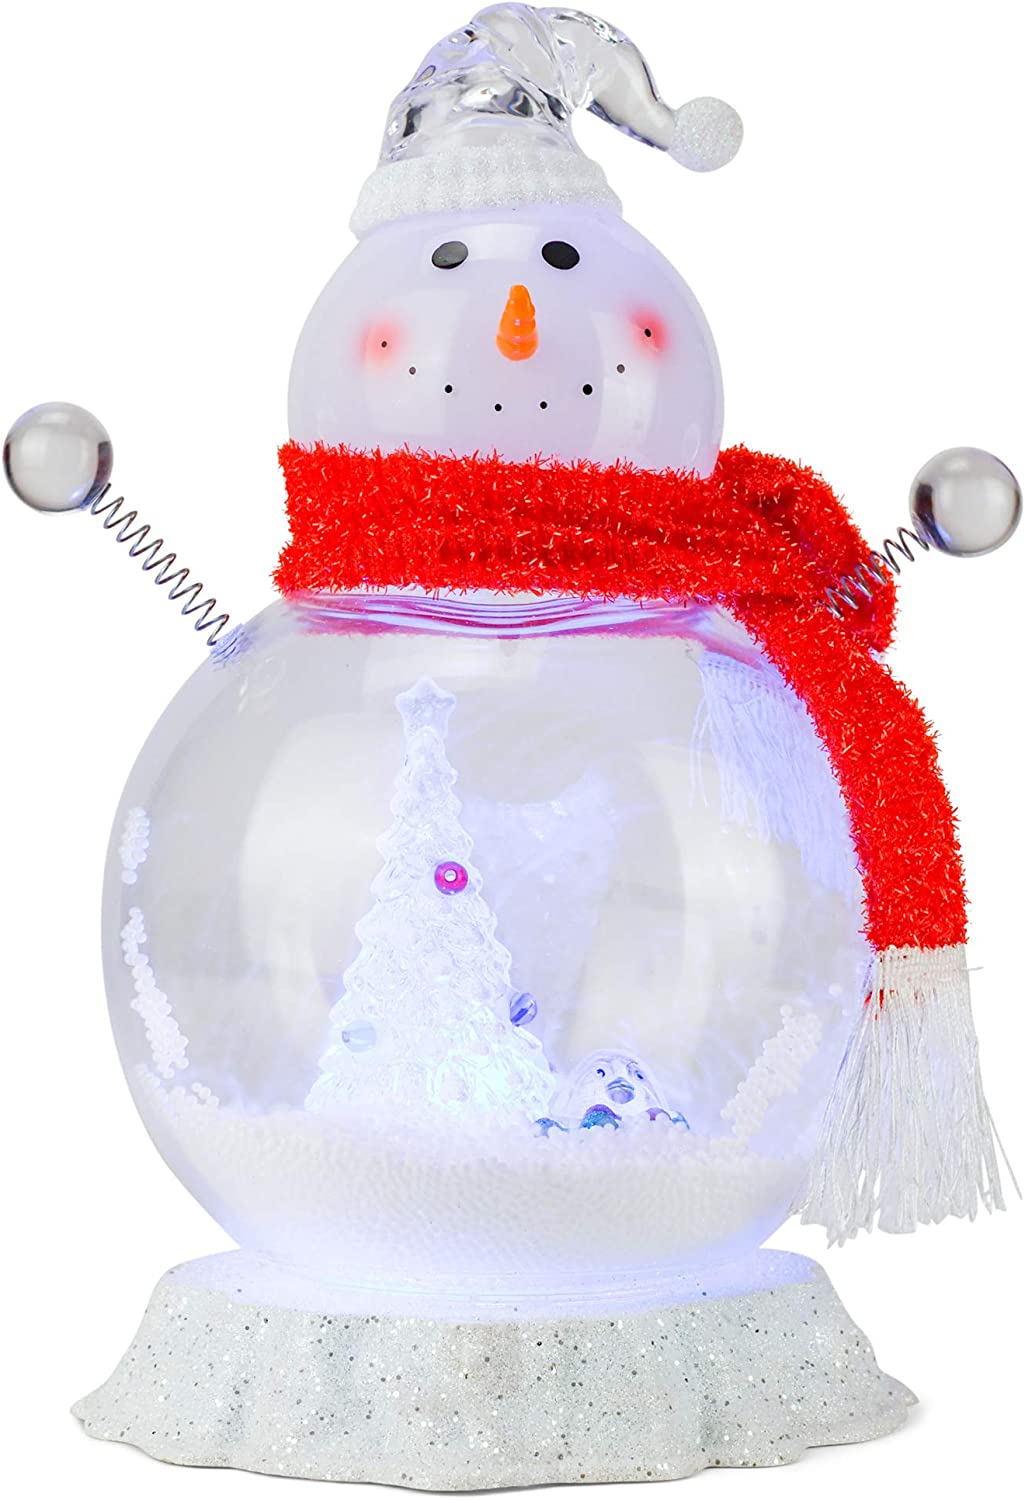 Roman shopping 133387 Led Snowman Snow Blowing Tree 13.5 M OFFicial mail order Penguin inch